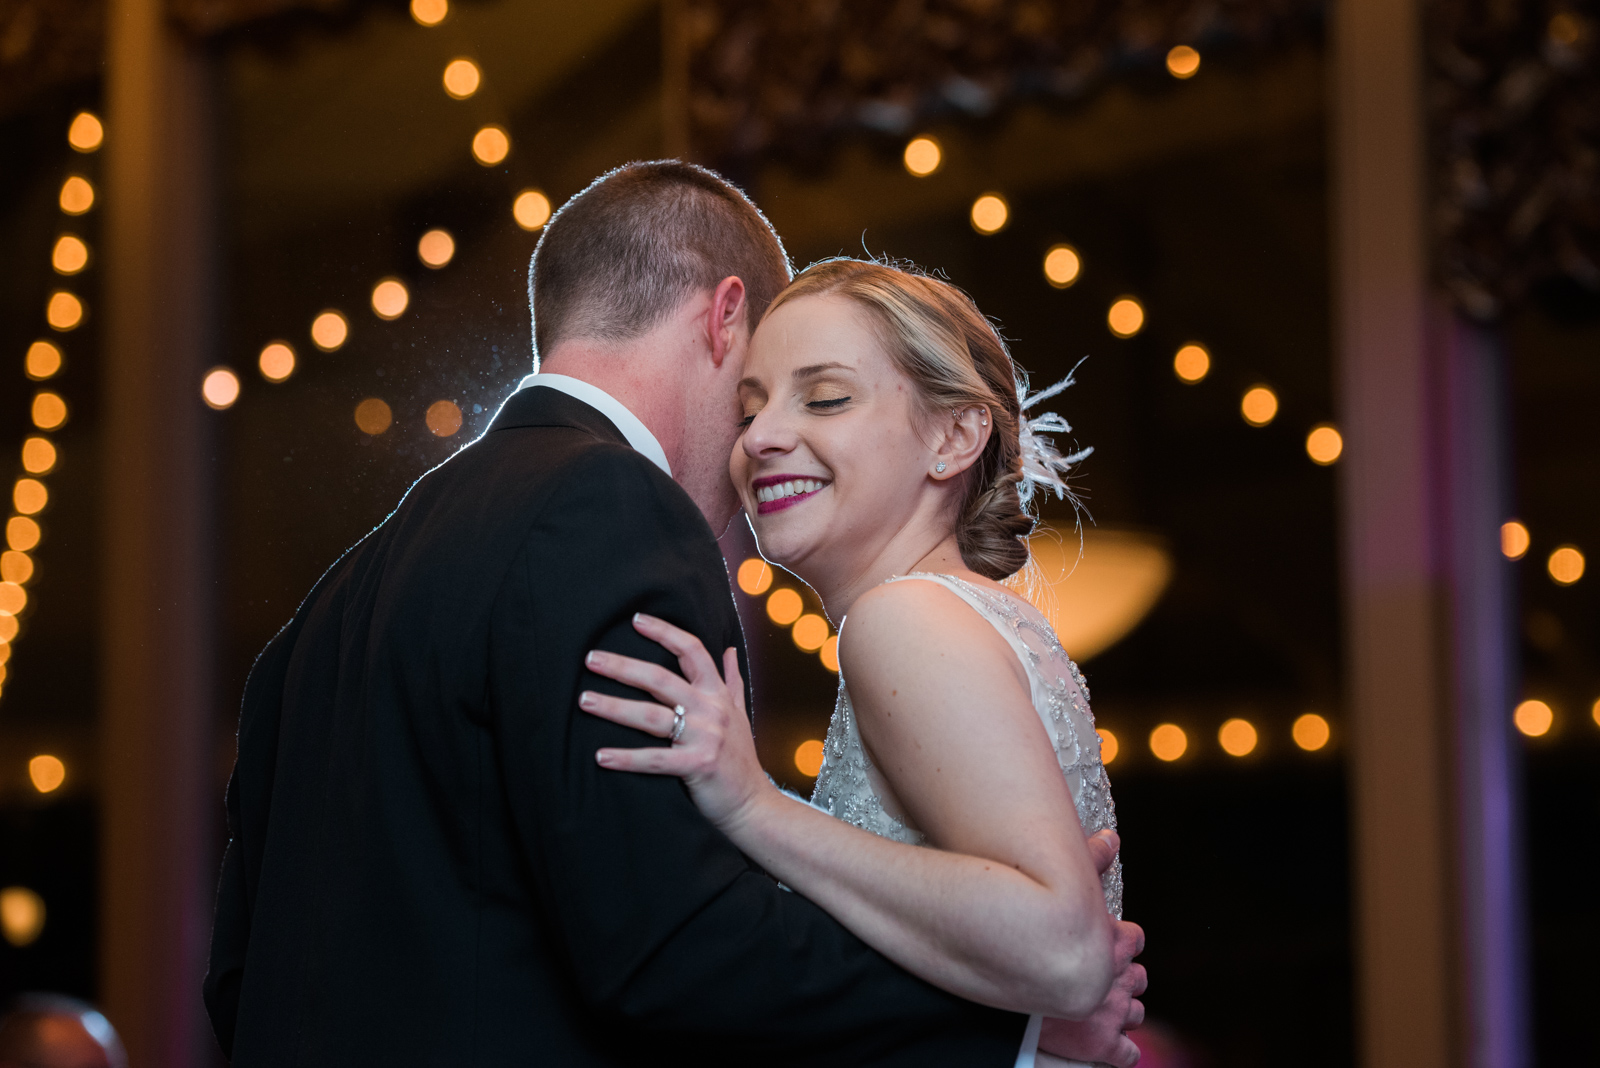 first-dance-Scranton-clarks-summit-wedding-glen-oaks-contry-club-wedding-photographer-steven-serge-4.jpg